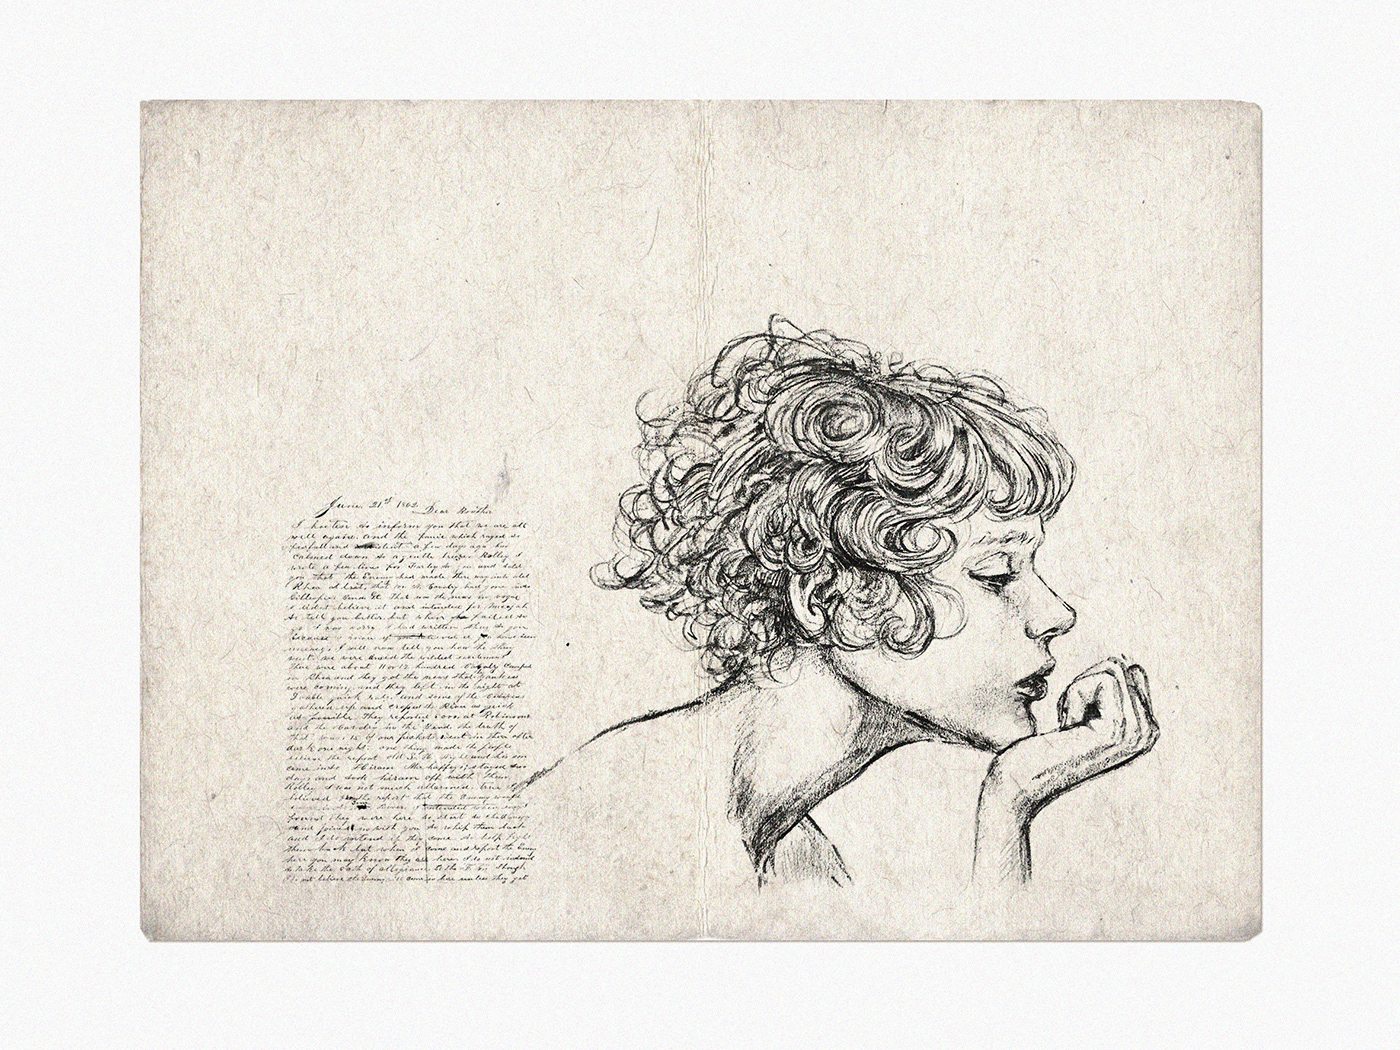 croquis Diary doodle Drawing  figuredrawing ILLUSTRATION  pencildrawing scribble sketch vintage